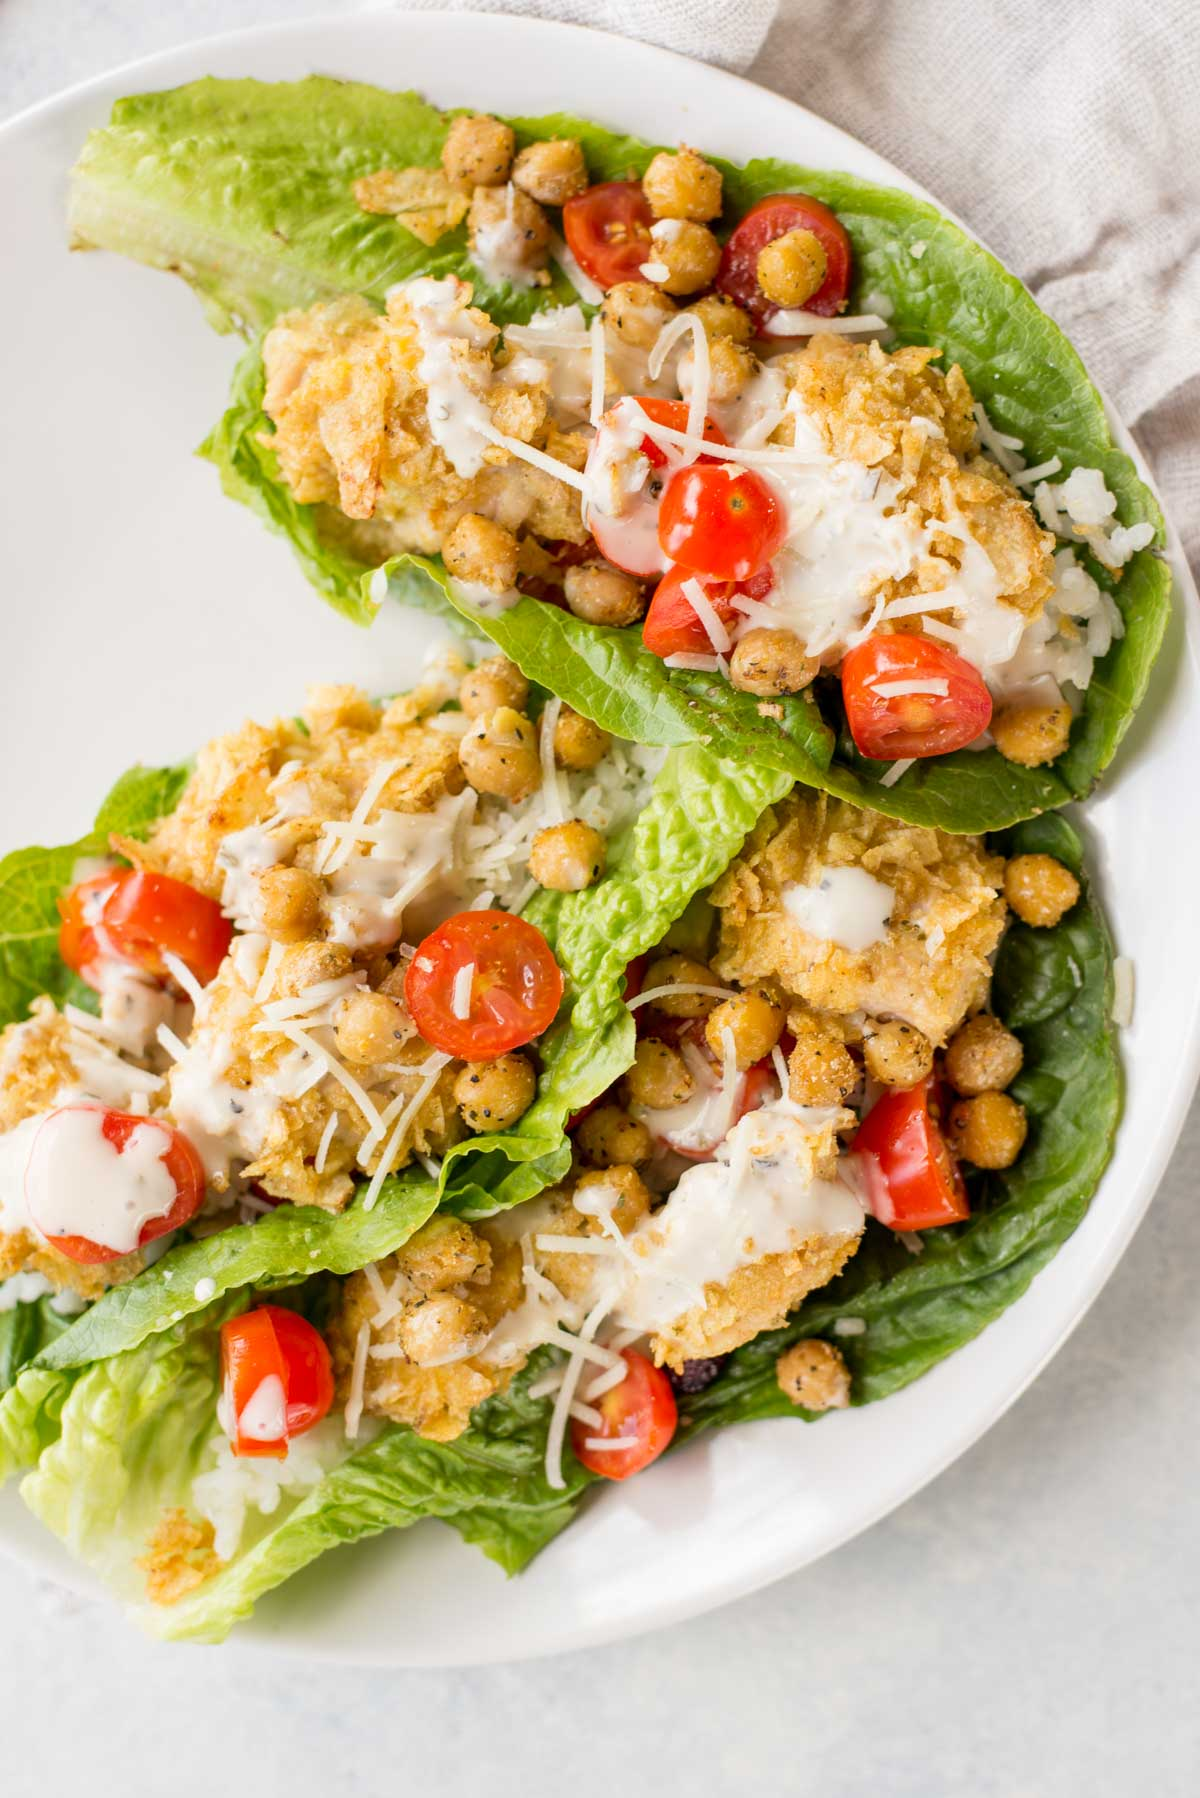 This quick mean is delicious, gluten-free and full of flavor. Healthy breaded chicken in a crispy lettuce wrap.